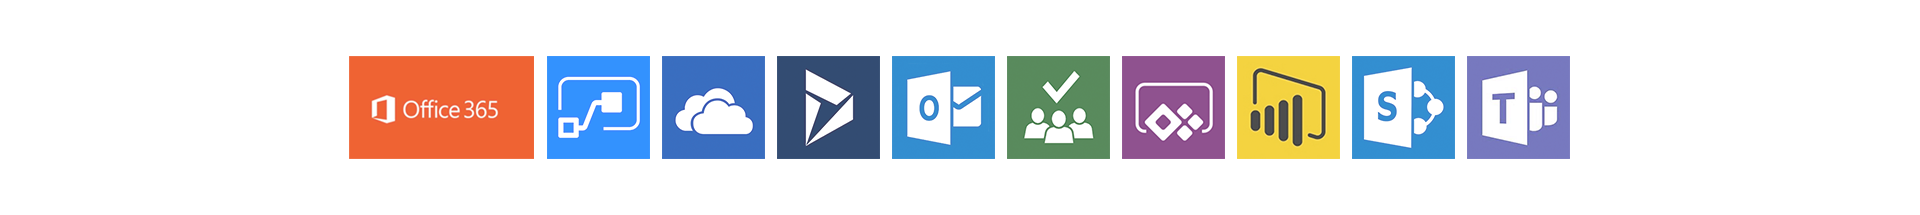 Office365 productivity suite